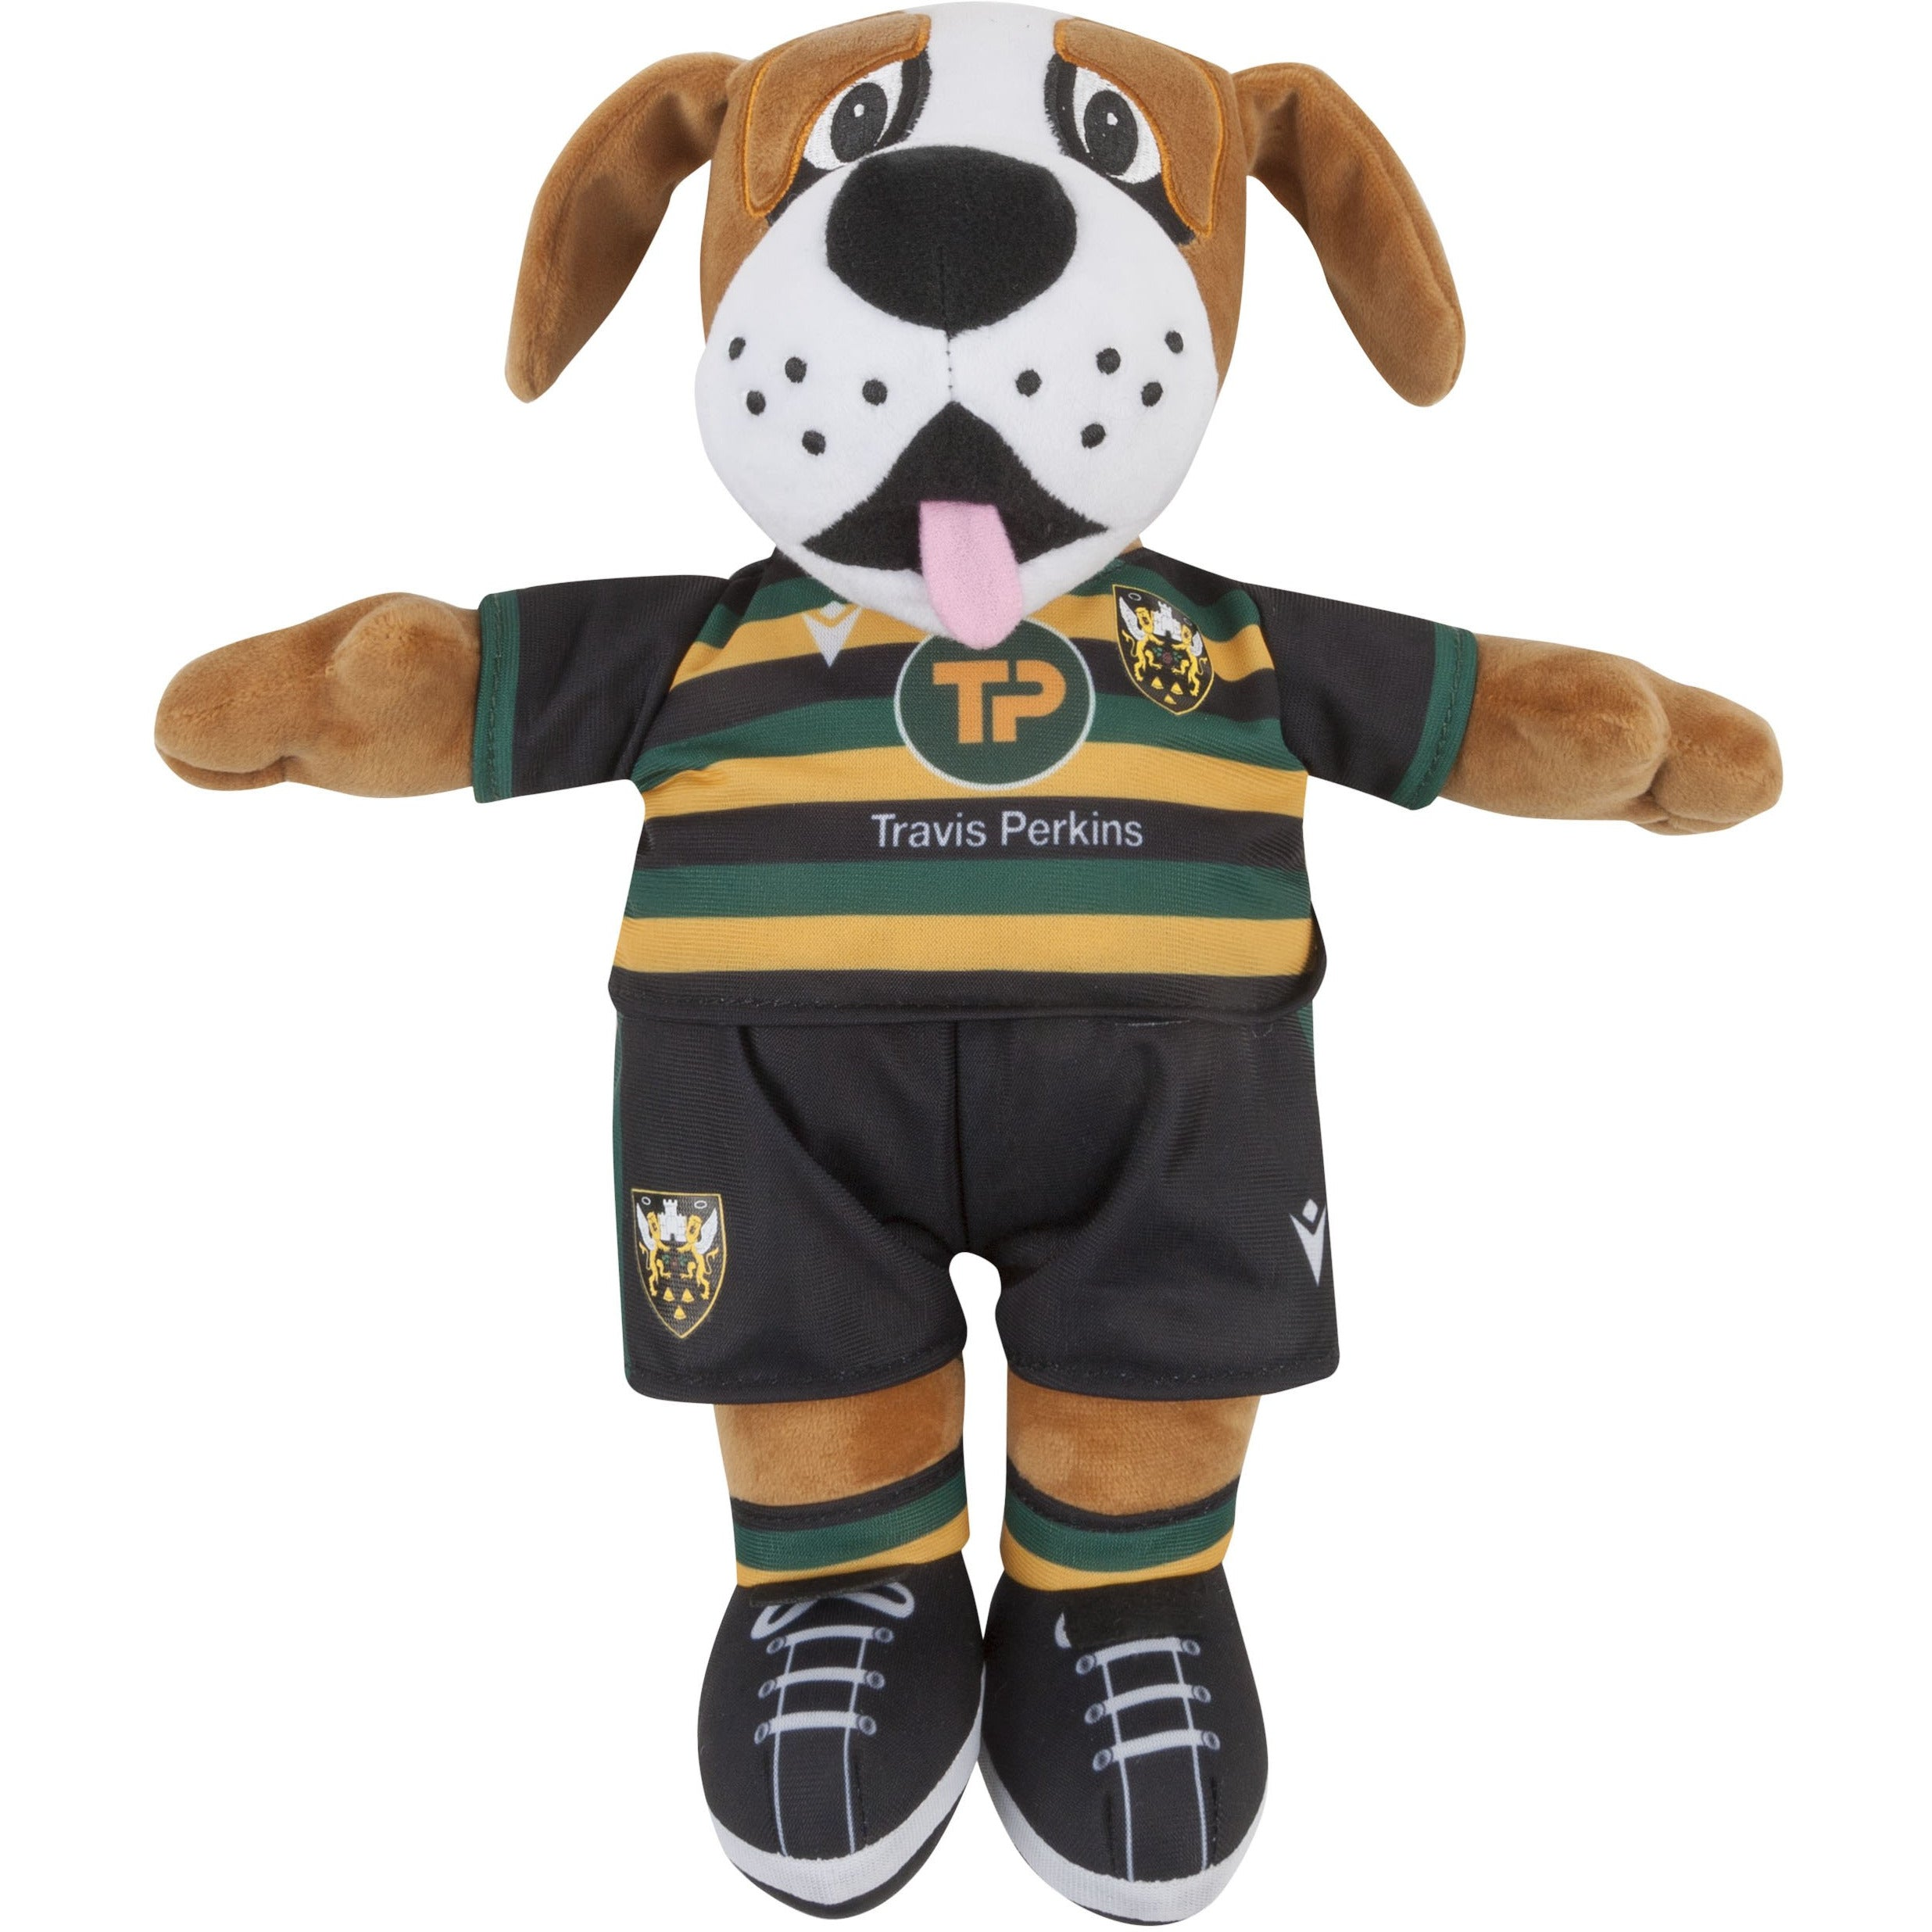 Saints TP Bernie Mascot Teddy